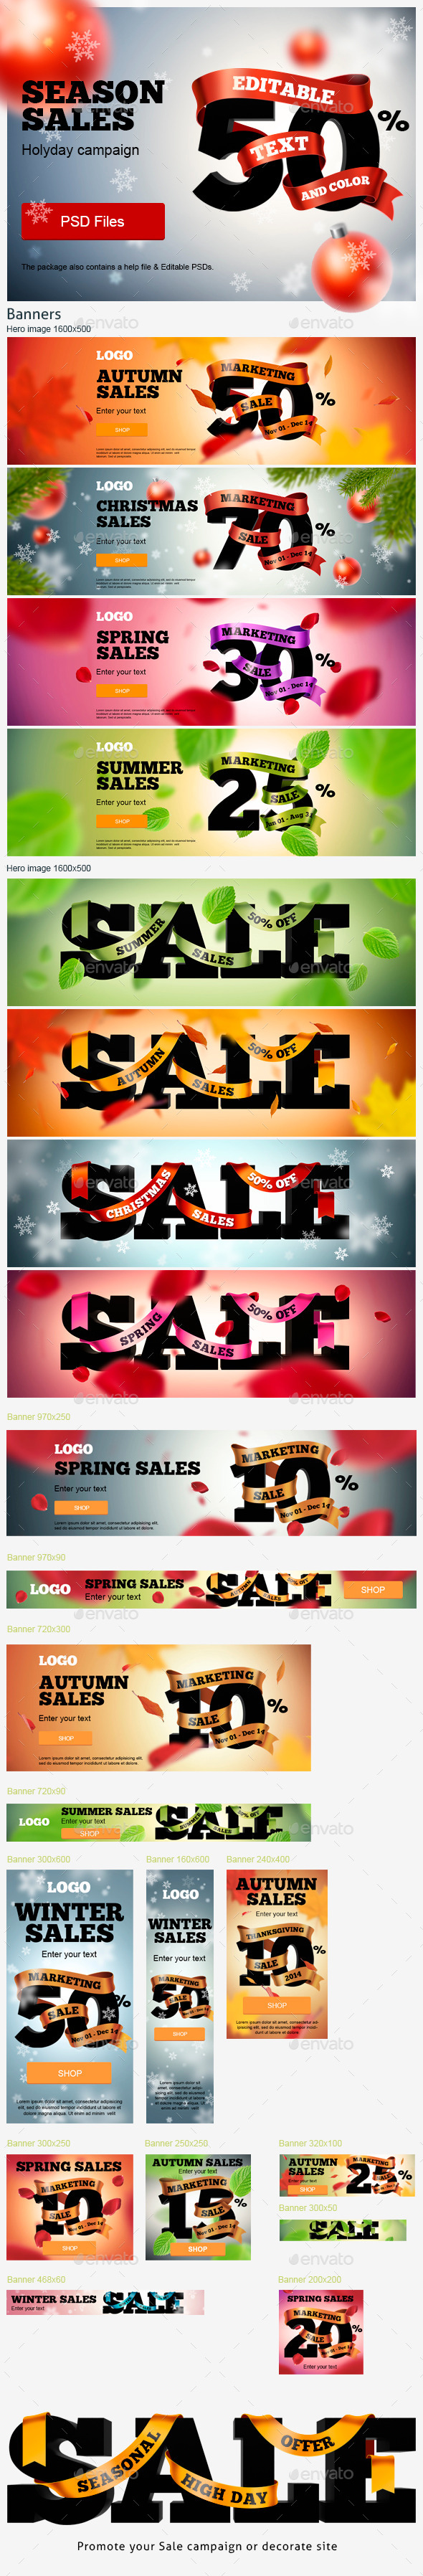 Season Sales Ads Kit - Banners & Ads Web Elements